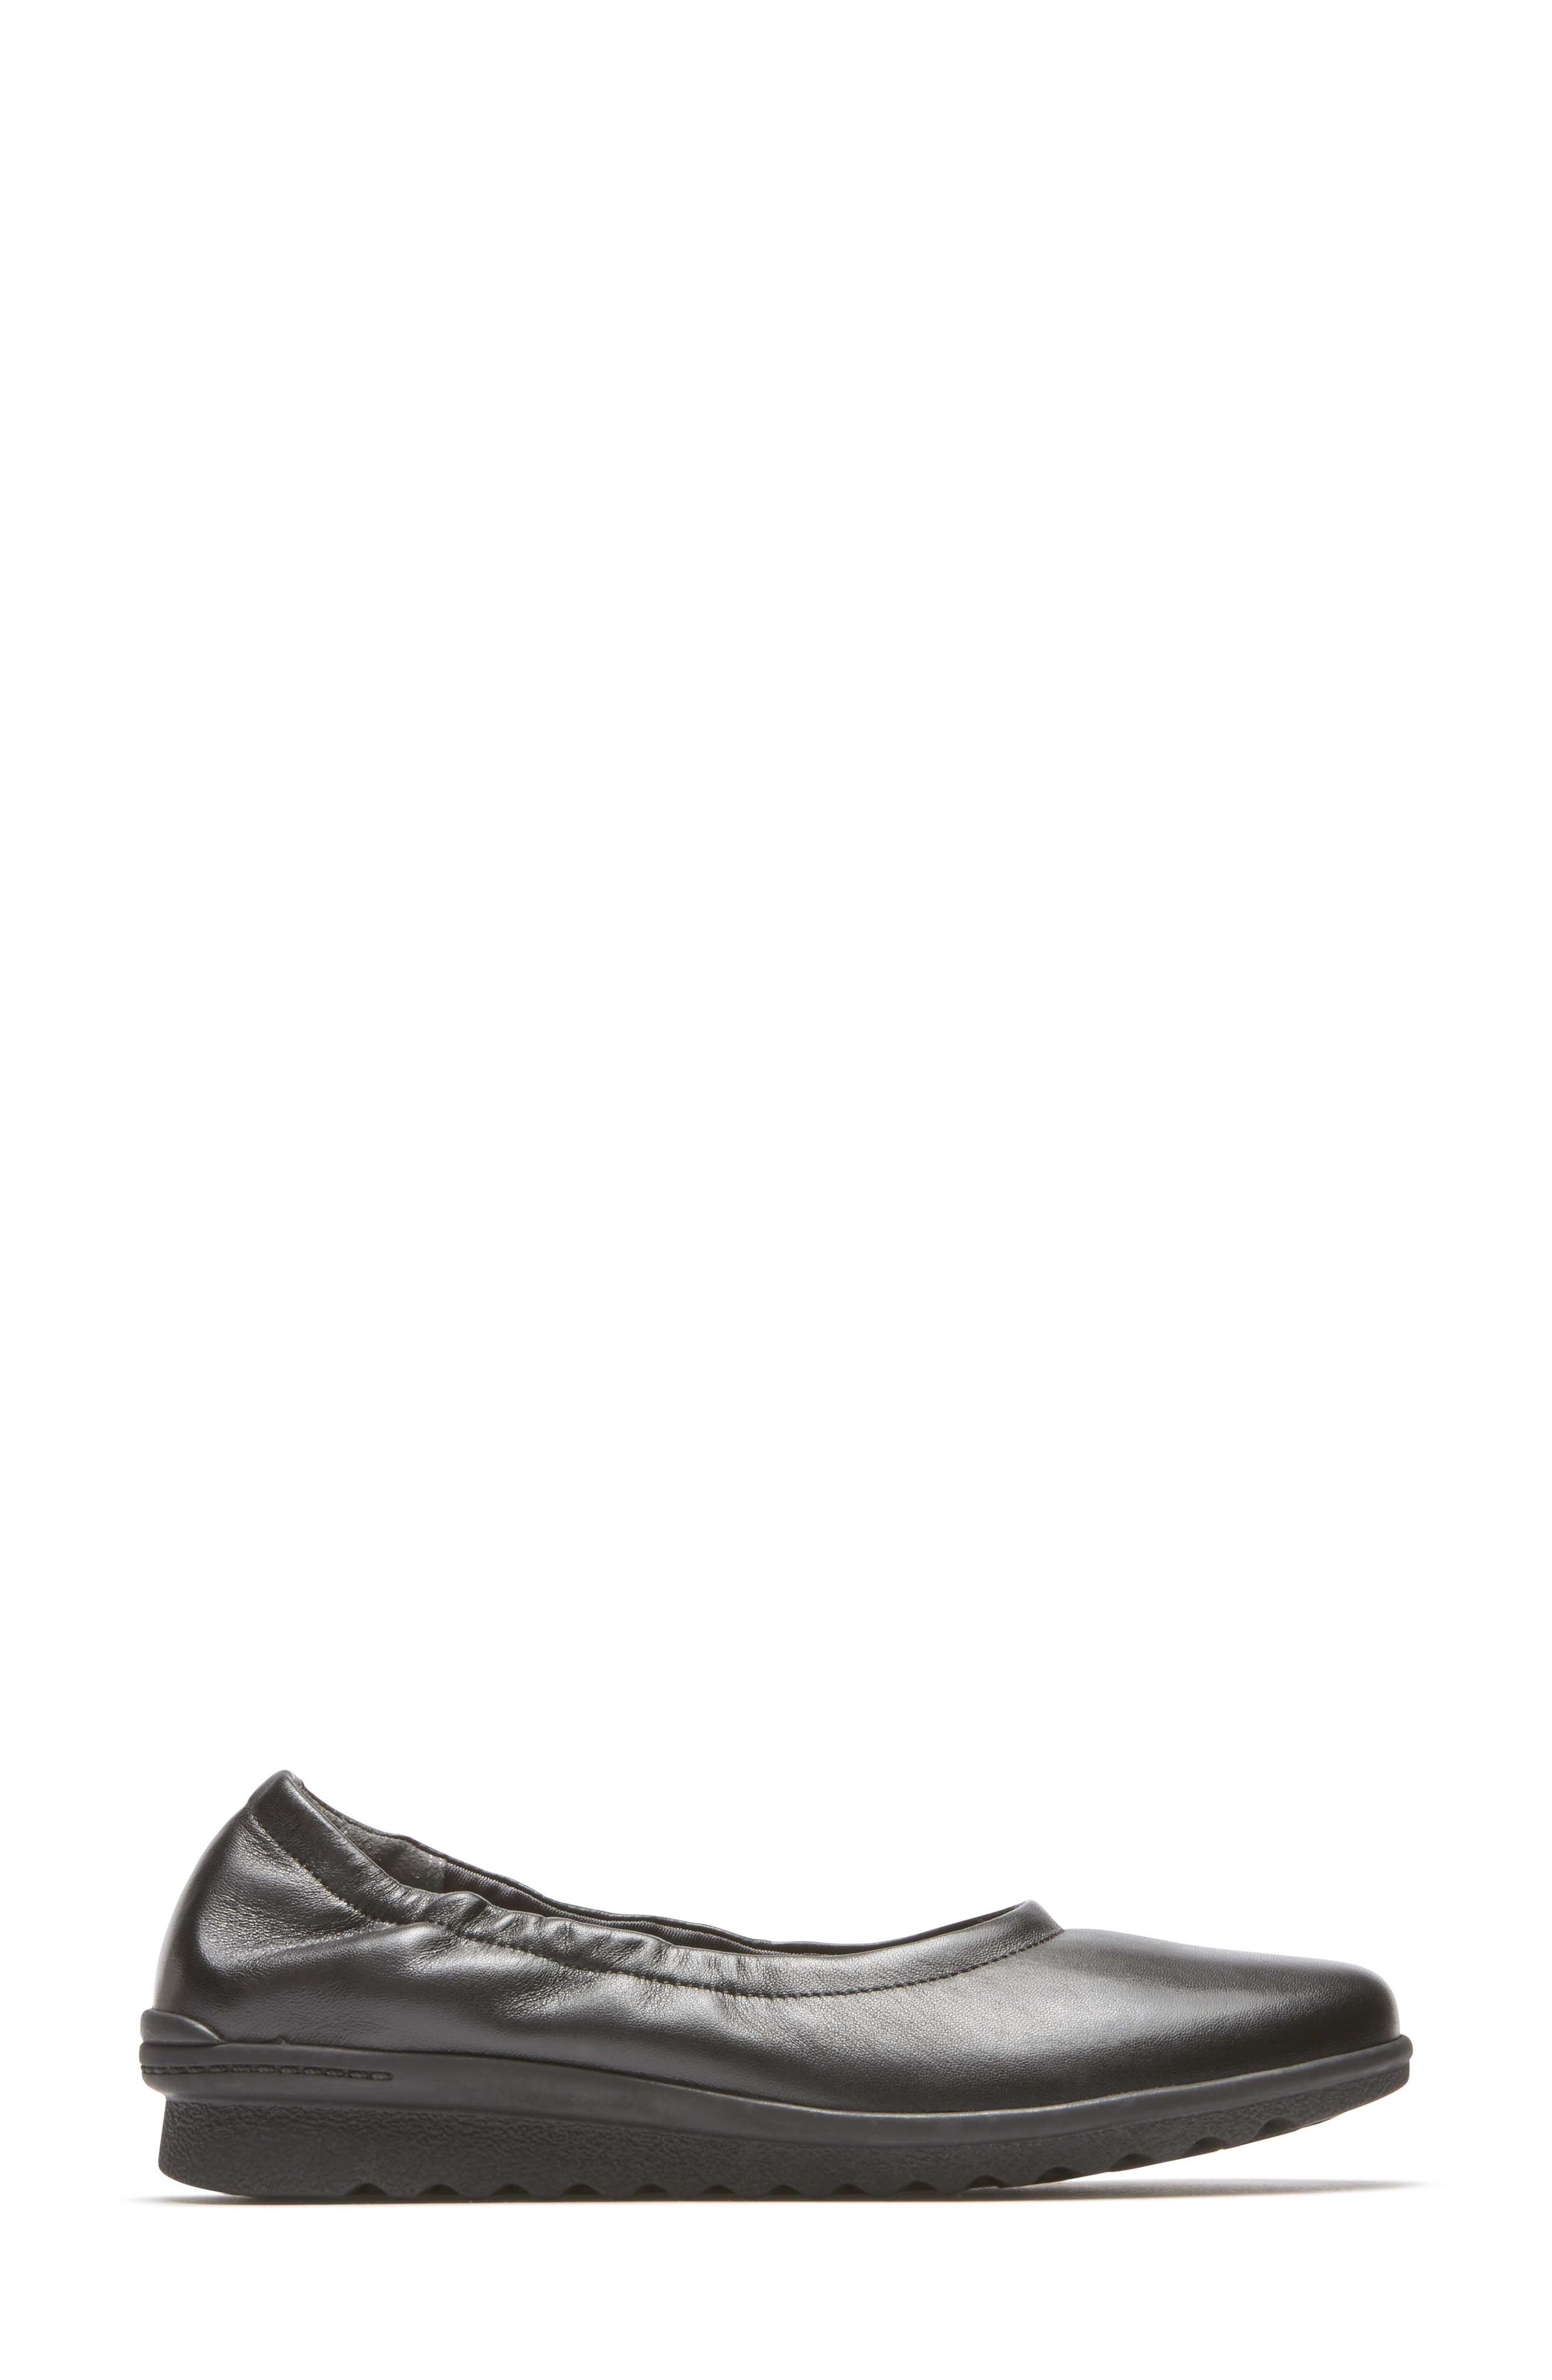 Chenole Ballet Flat,                             Alternate thumbnail 3, color,                             BLACK LEATHER